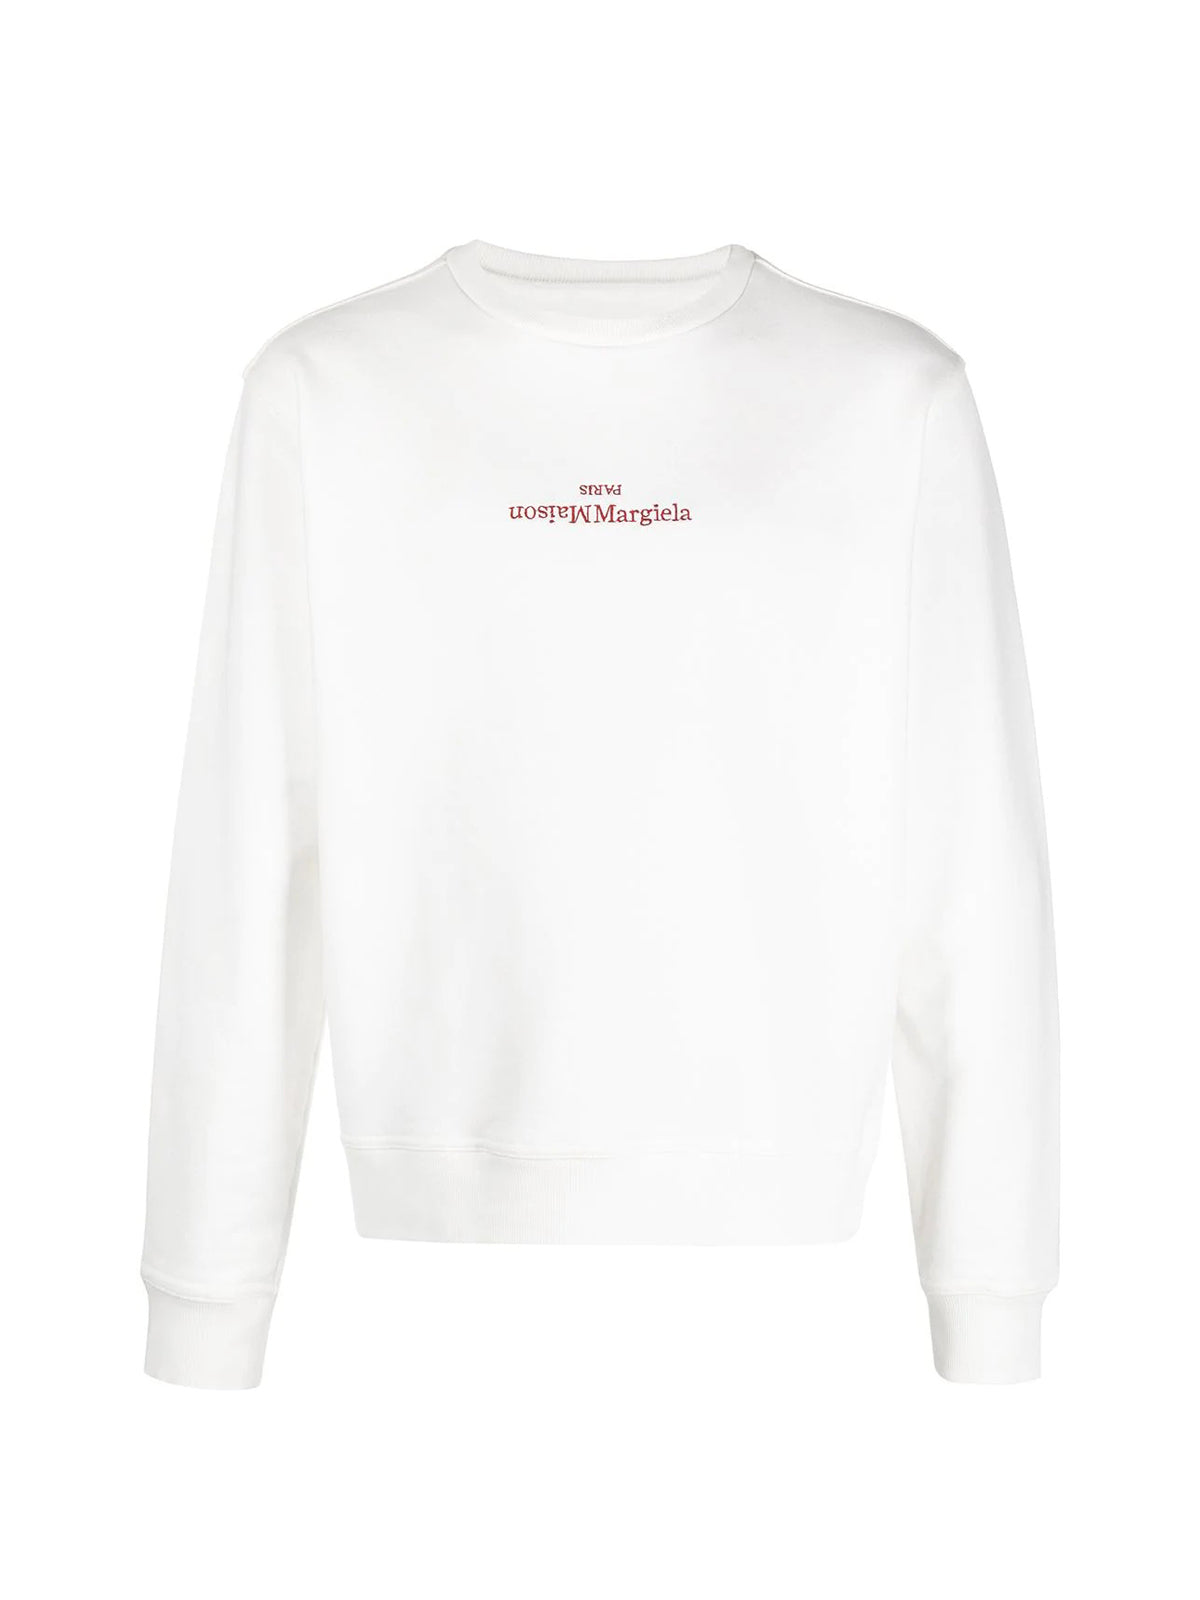 embroidered inverted logo sweatshirt